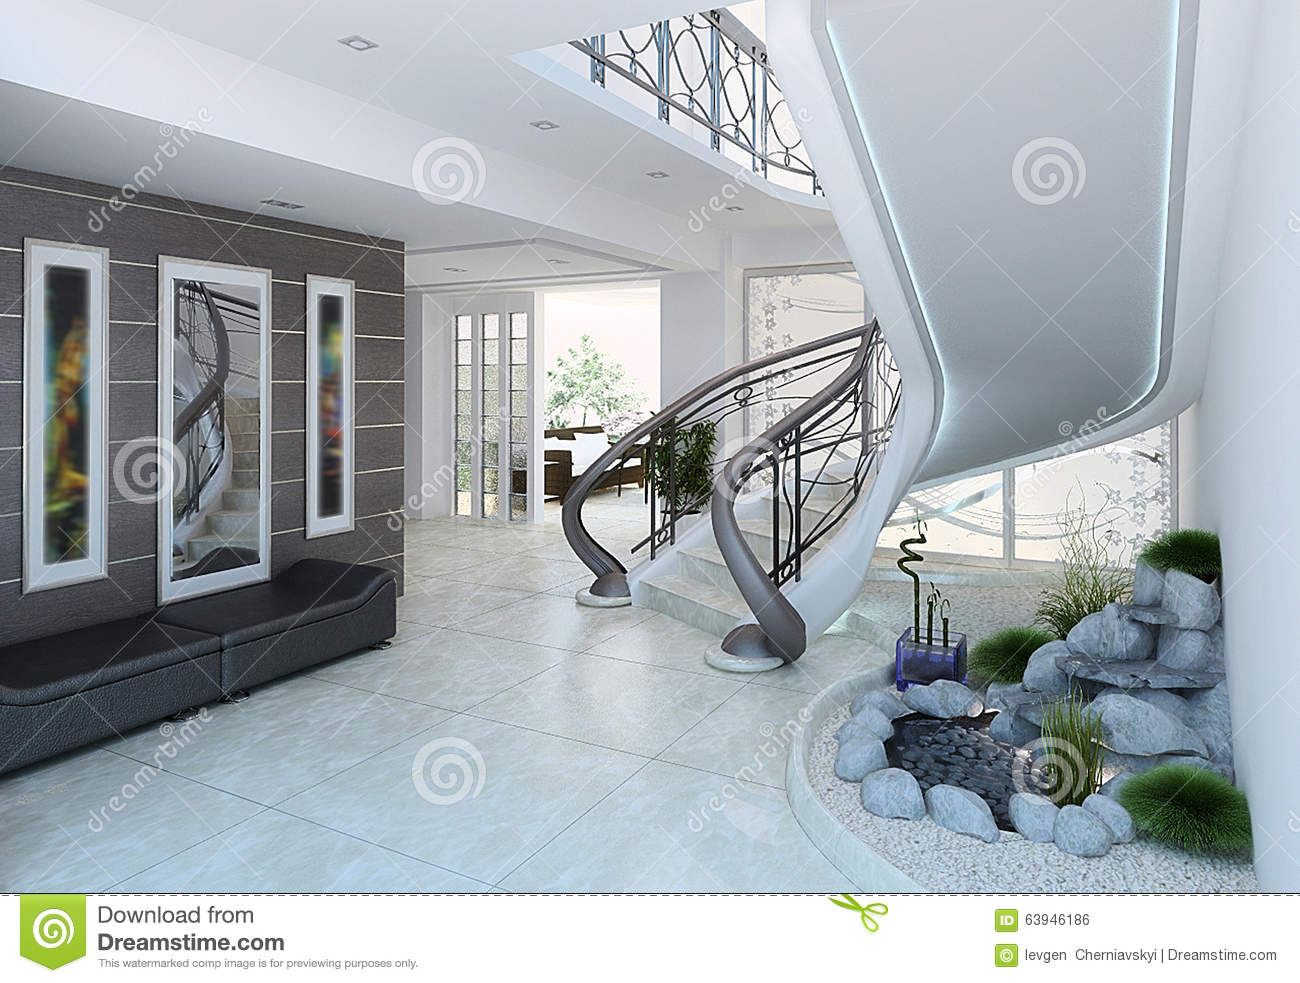 Artistic characteristics of modern interior design in conservative and elegance grey color